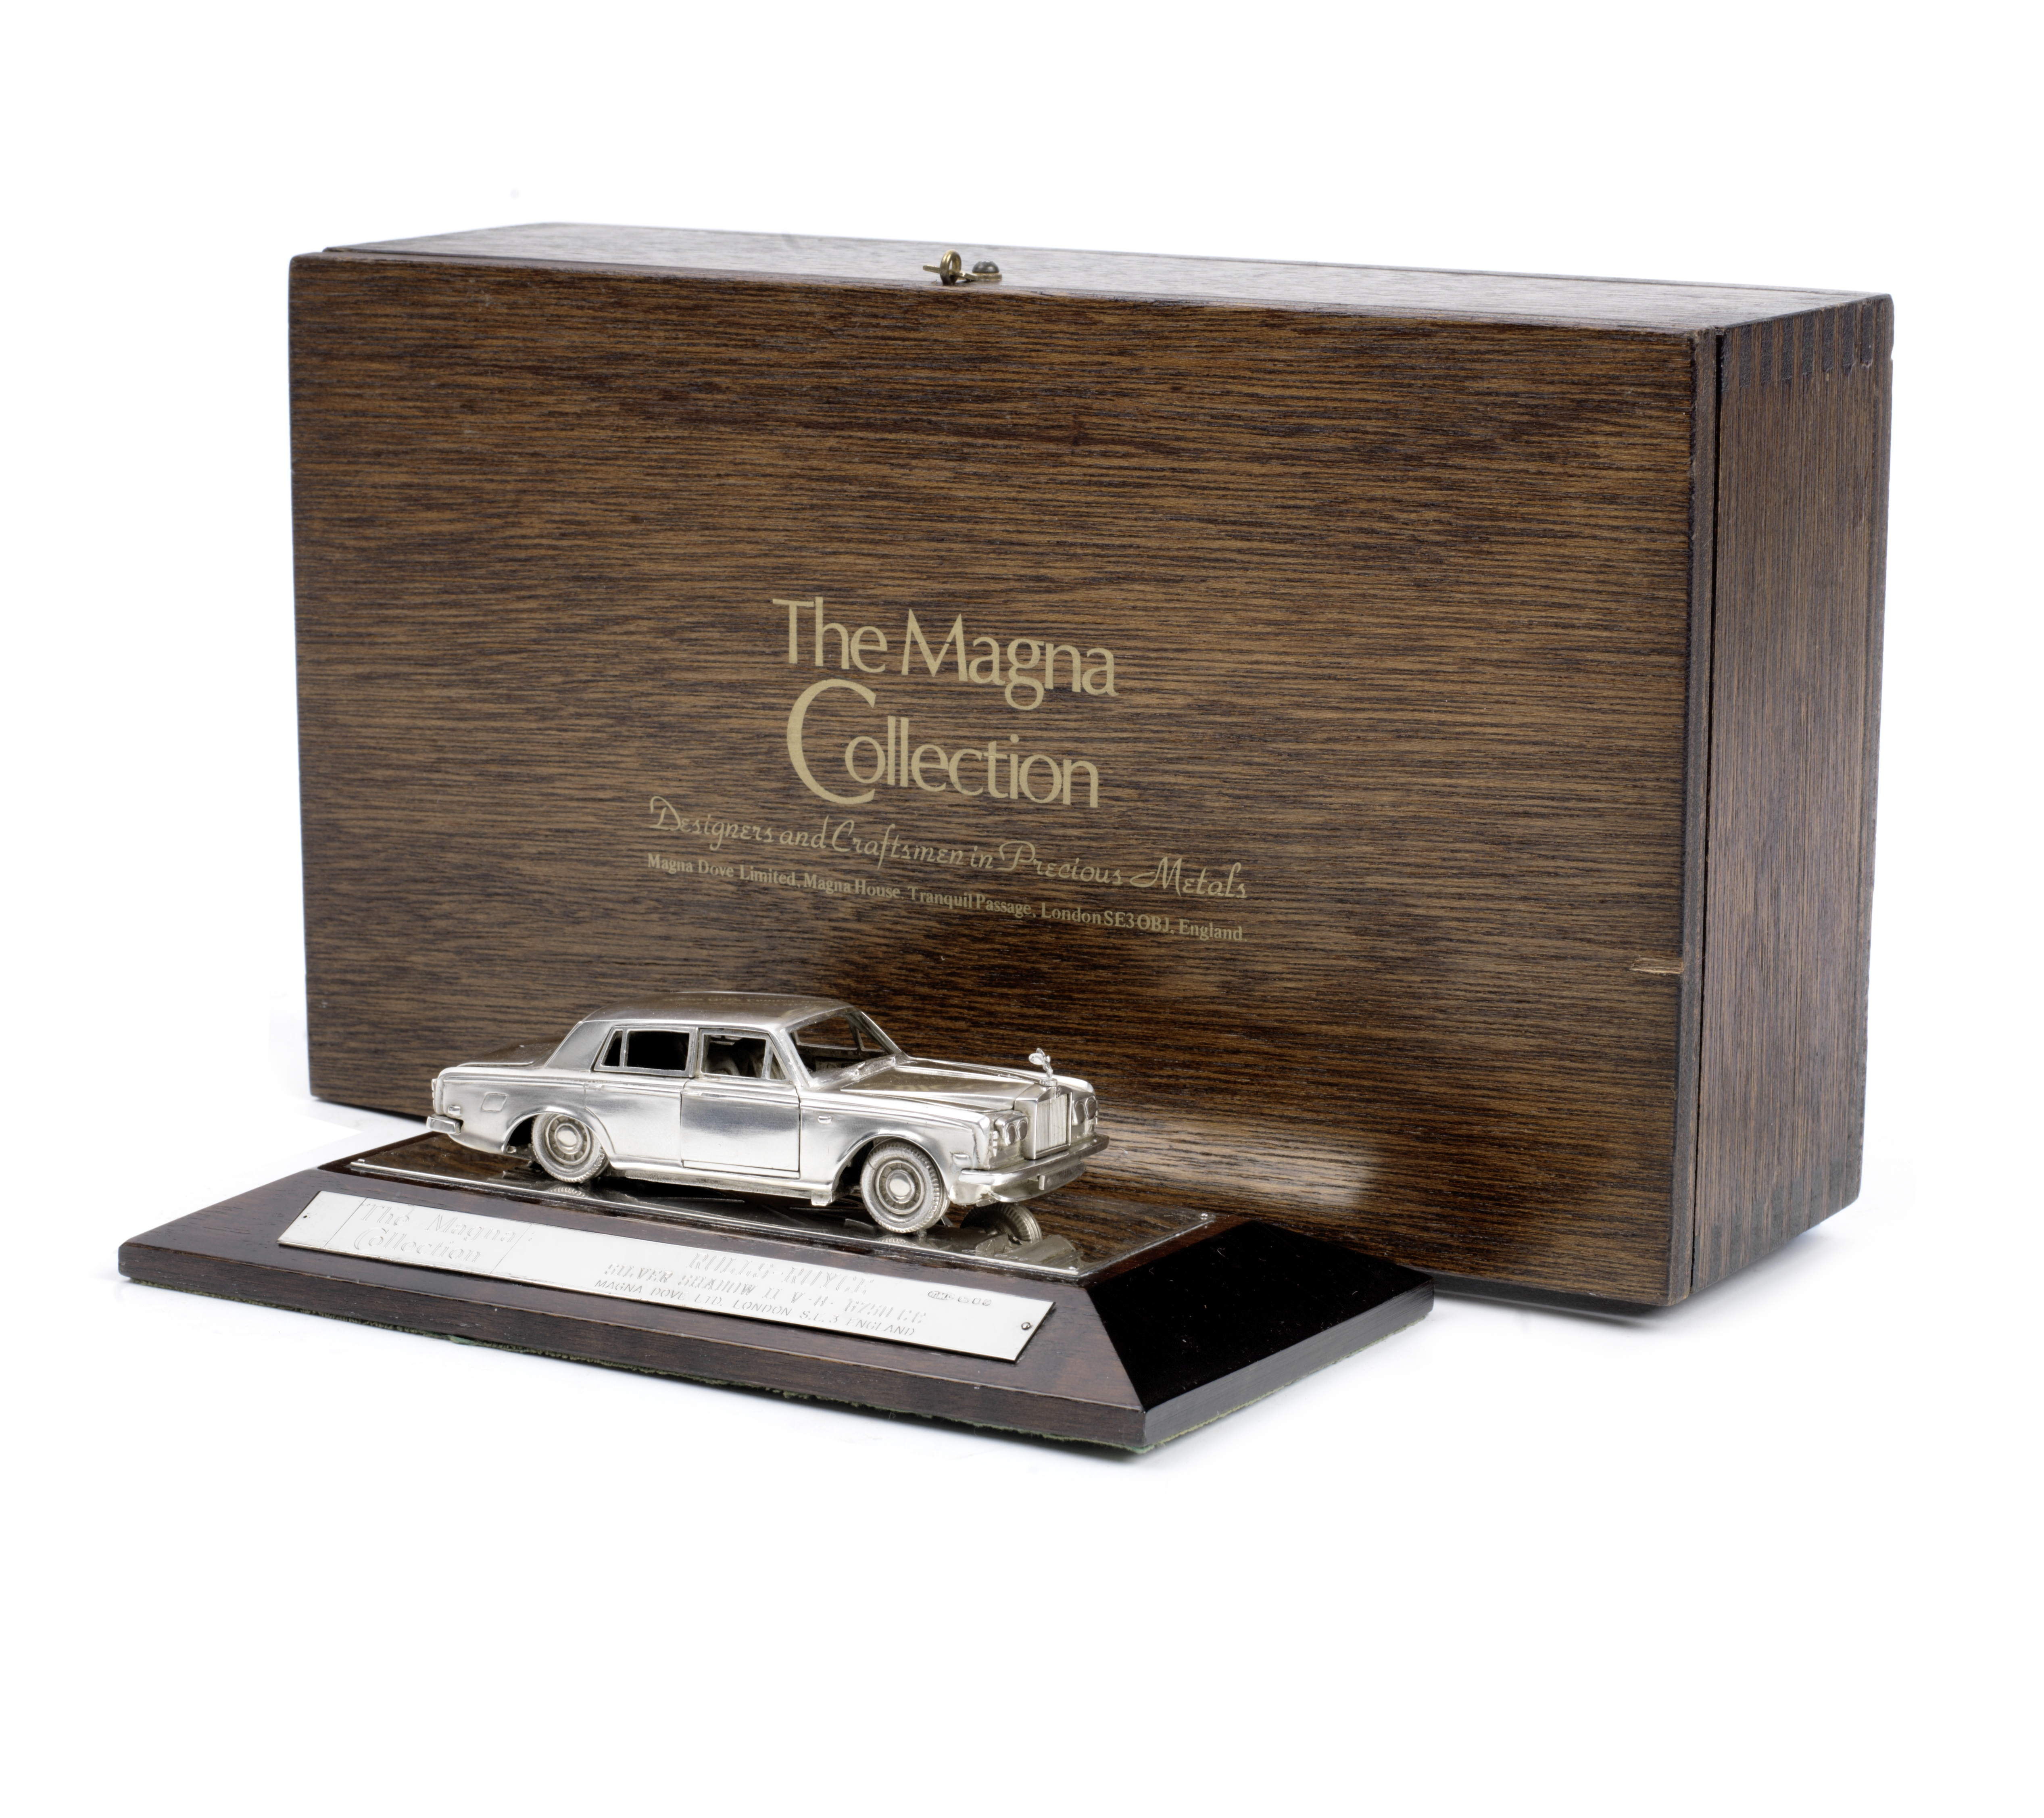 A 1:43 scale limited edition sterling silver model of a Rolls-Royce Silver Shadow II by Magna Dov...